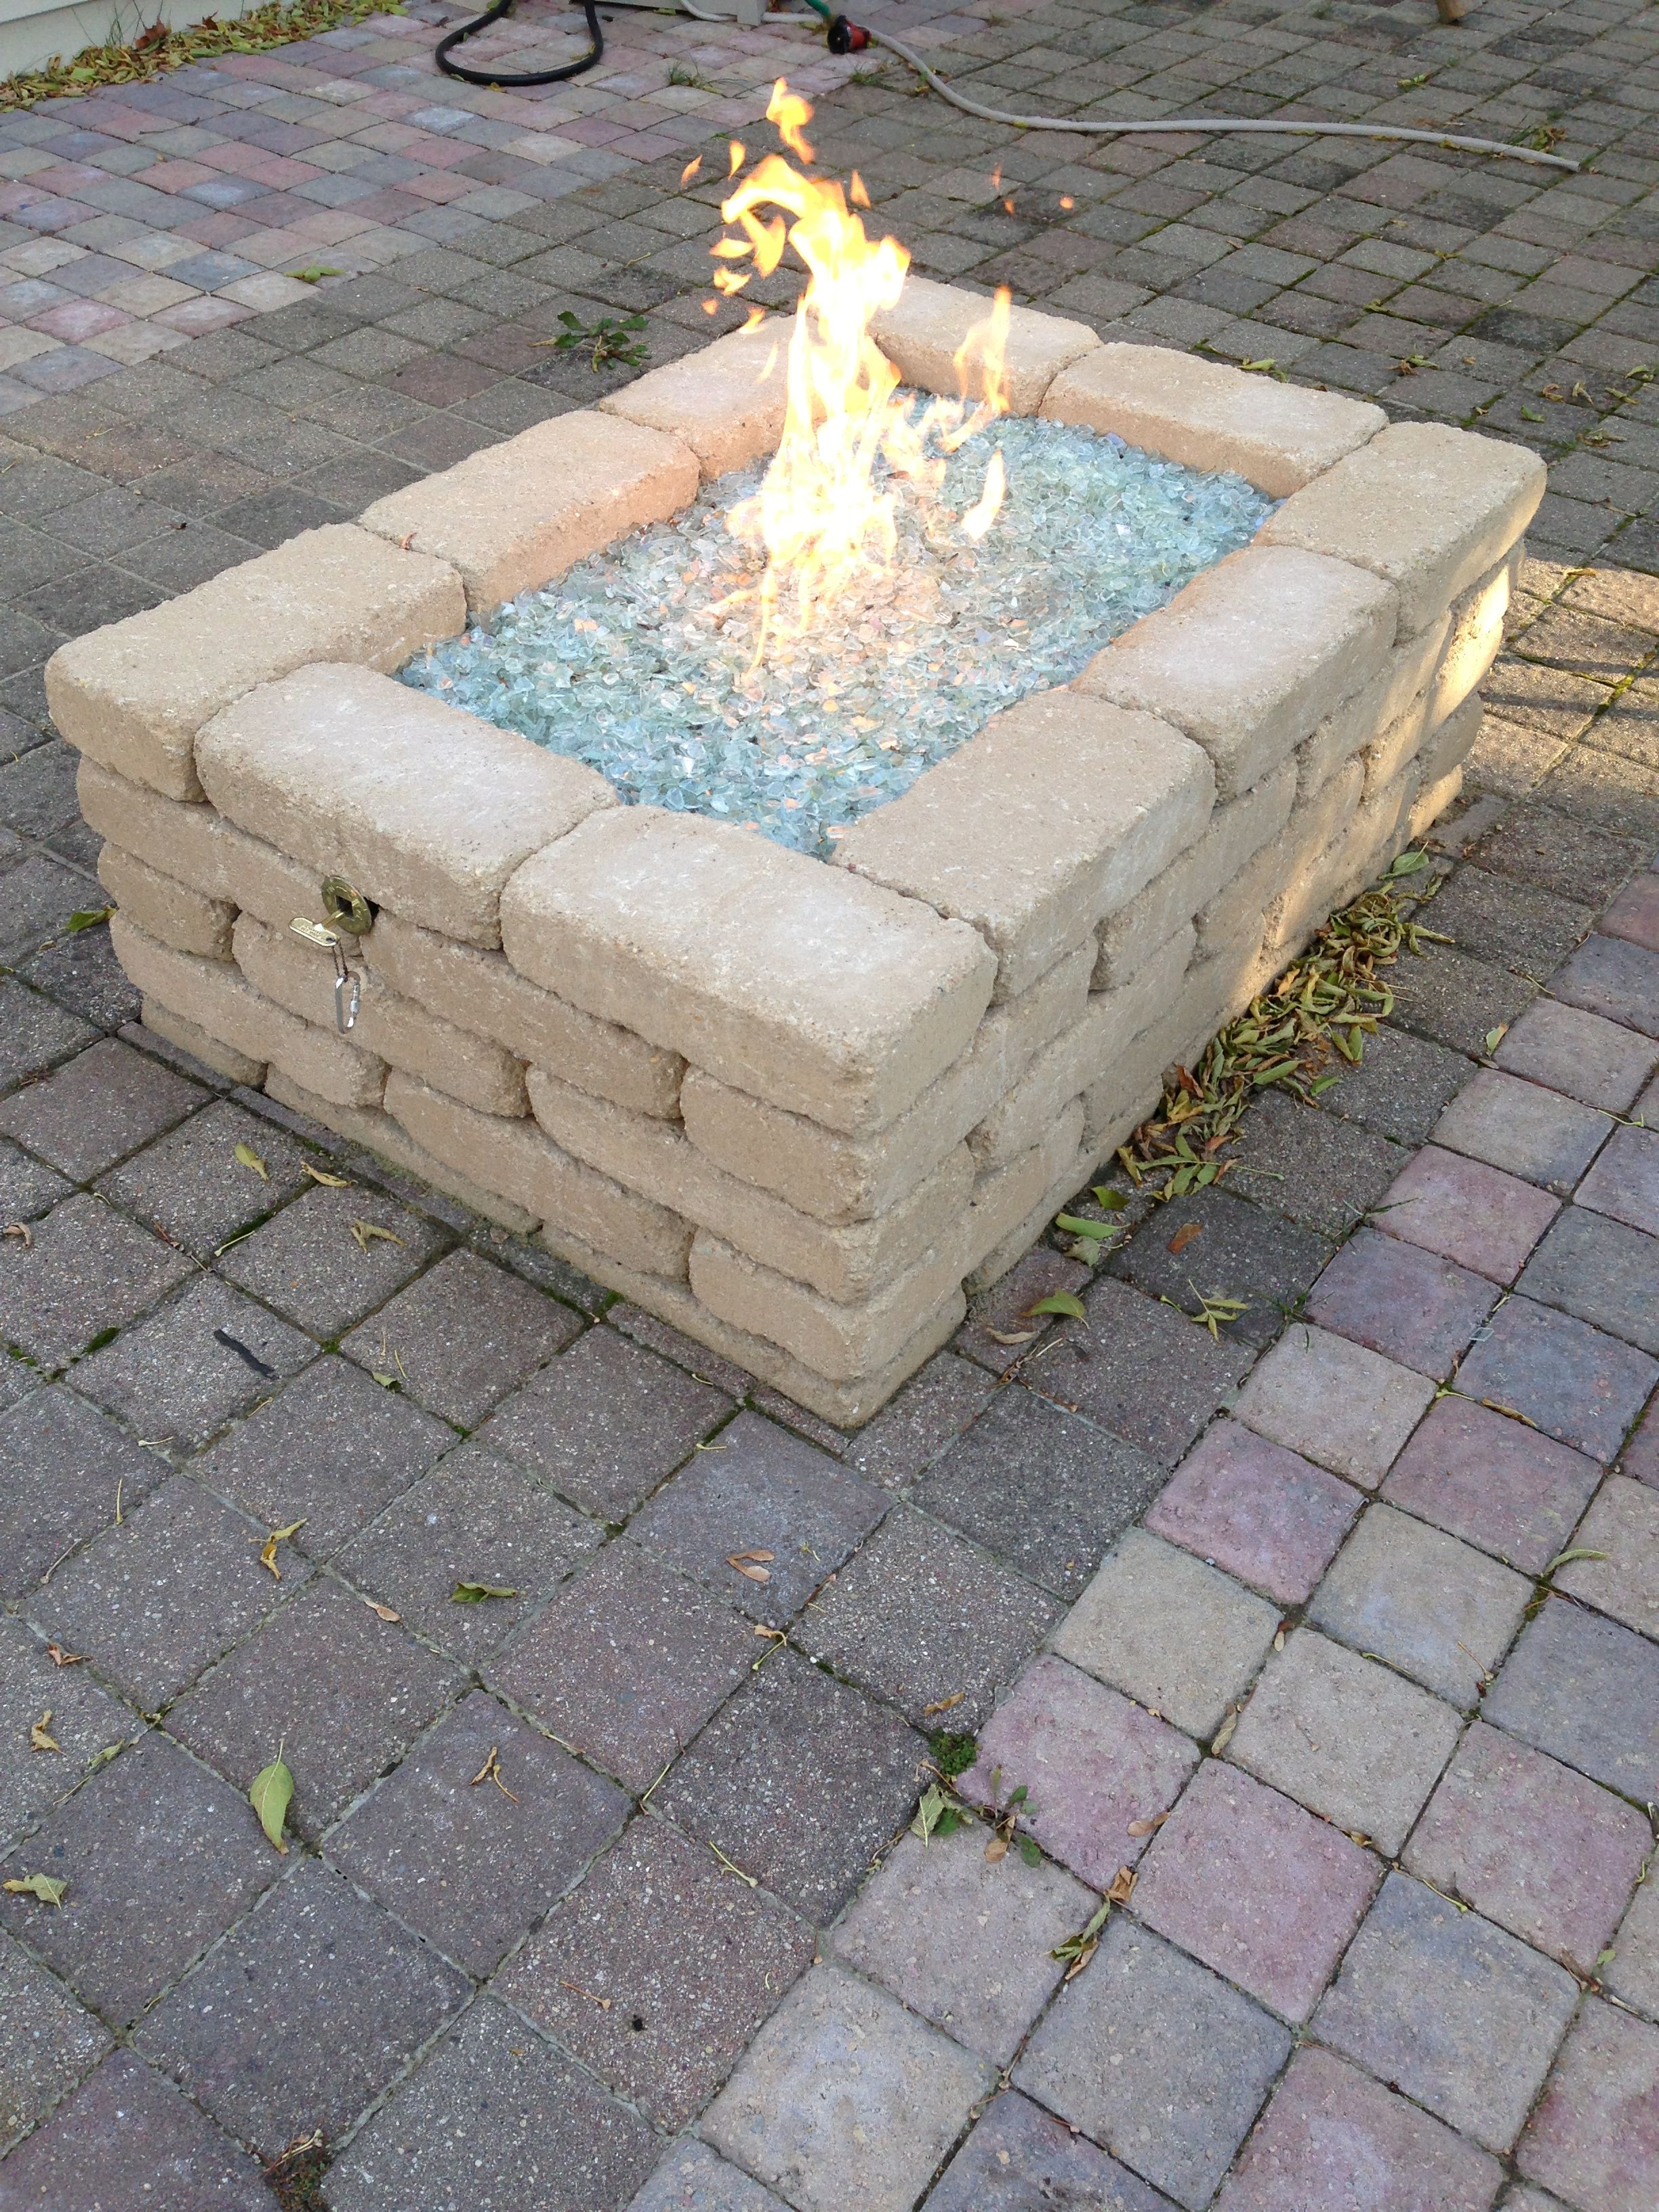 Natural Gas Fire Pit Block Purchased From Menards Glass Purchased Online At Woodlanddirect Com Burner Purchased Online Natural Gas Fire Pit Round Propane Fire Pit Fire Pit Gallery